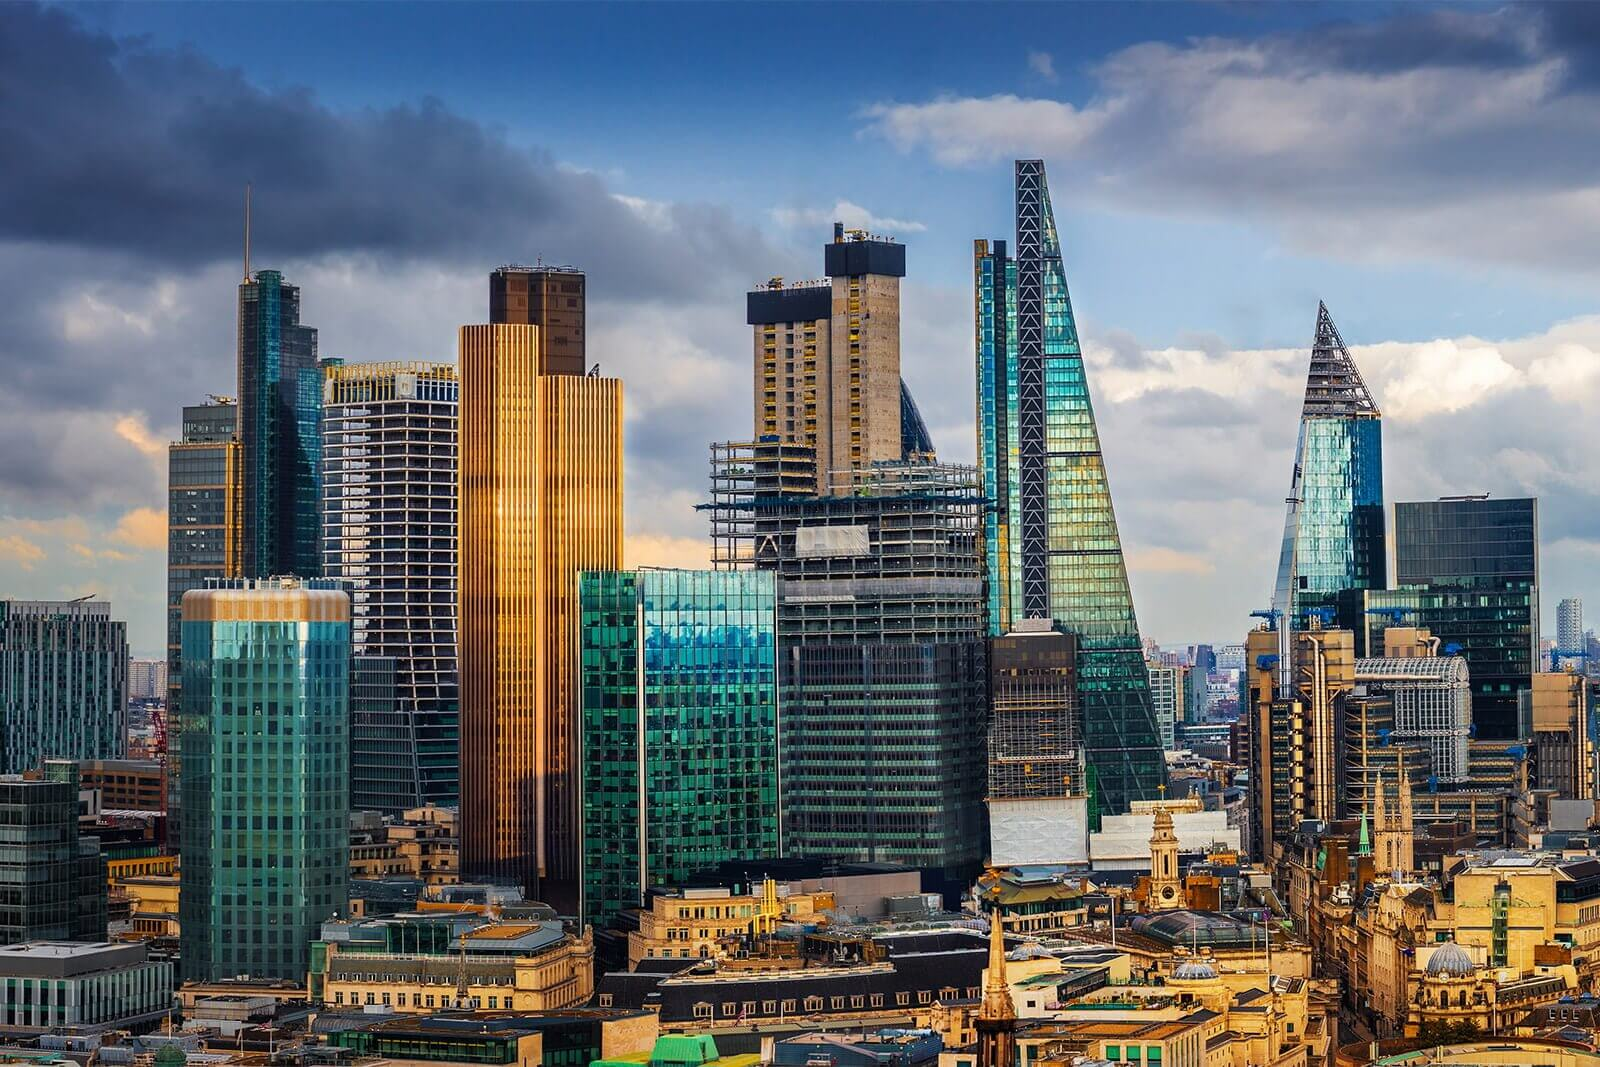 UK Commercial Property Market Update – a Kiwi perspective